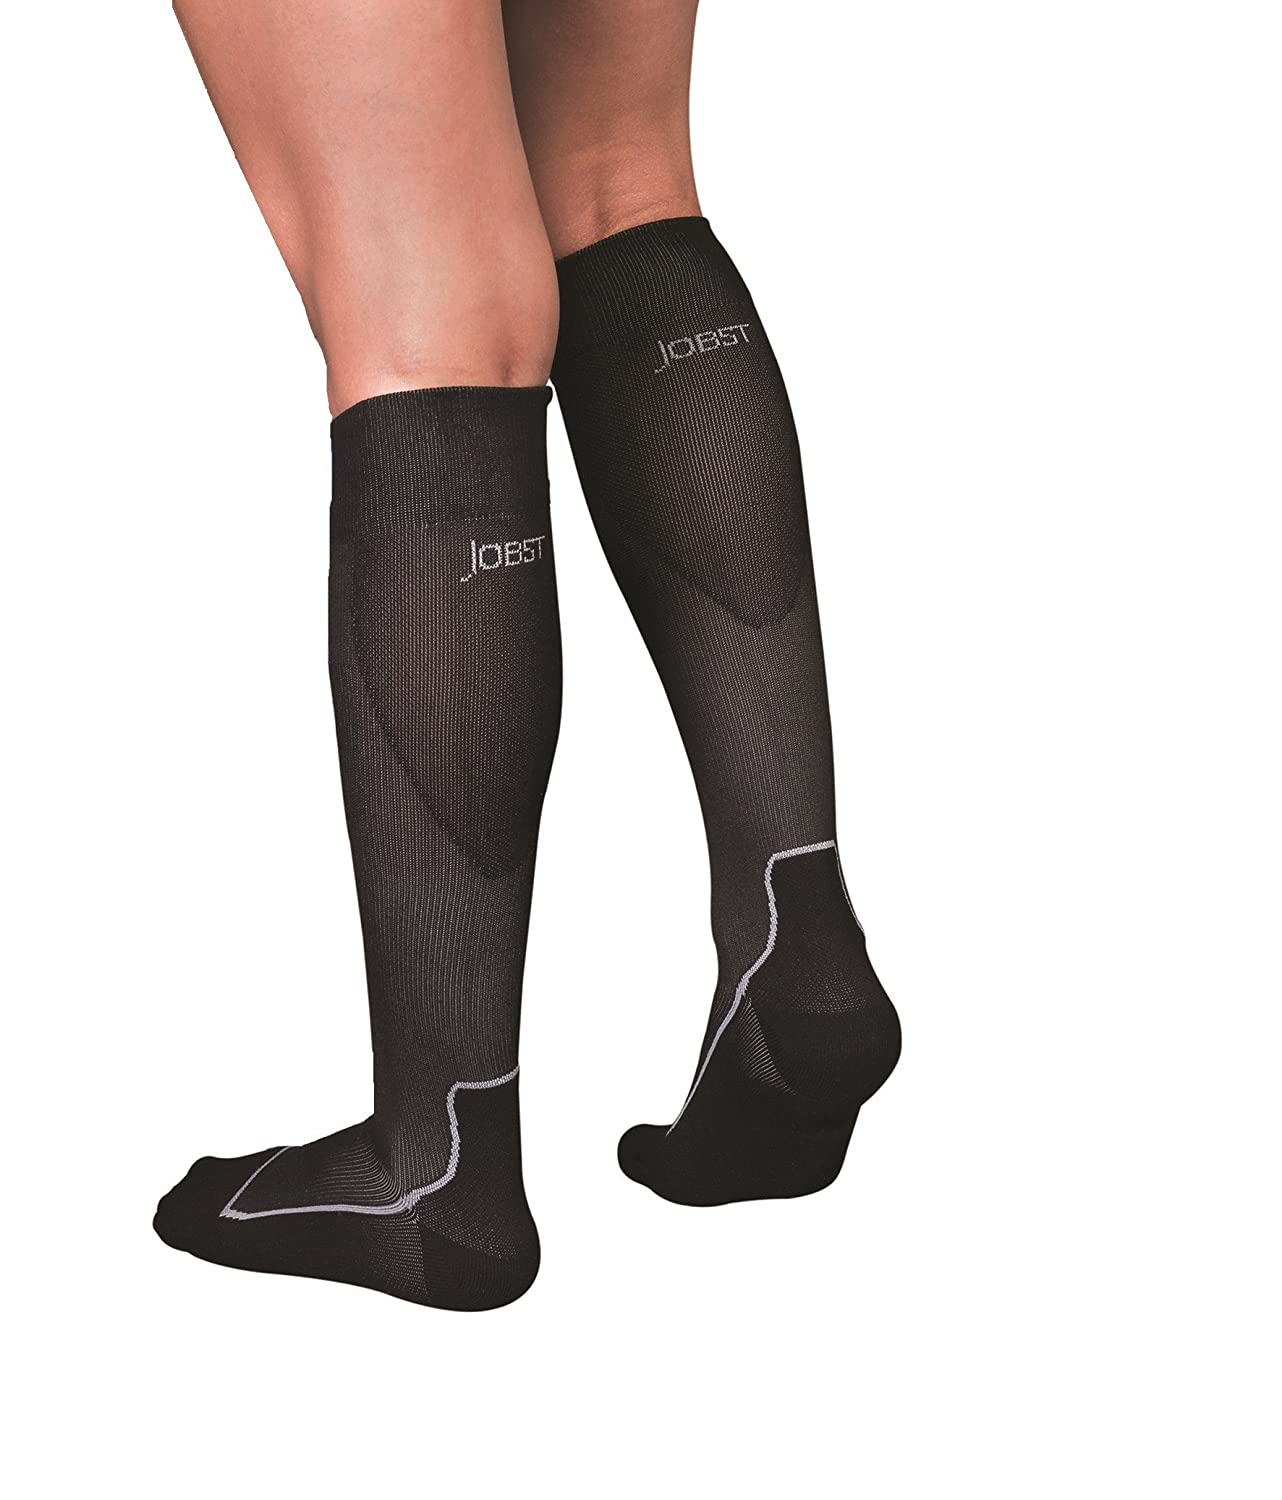 Amazon.com: JOBST Sport Knee High 15-20 mmHg Compression Socks, Black/Grey, X-Large: Health & Personal Care